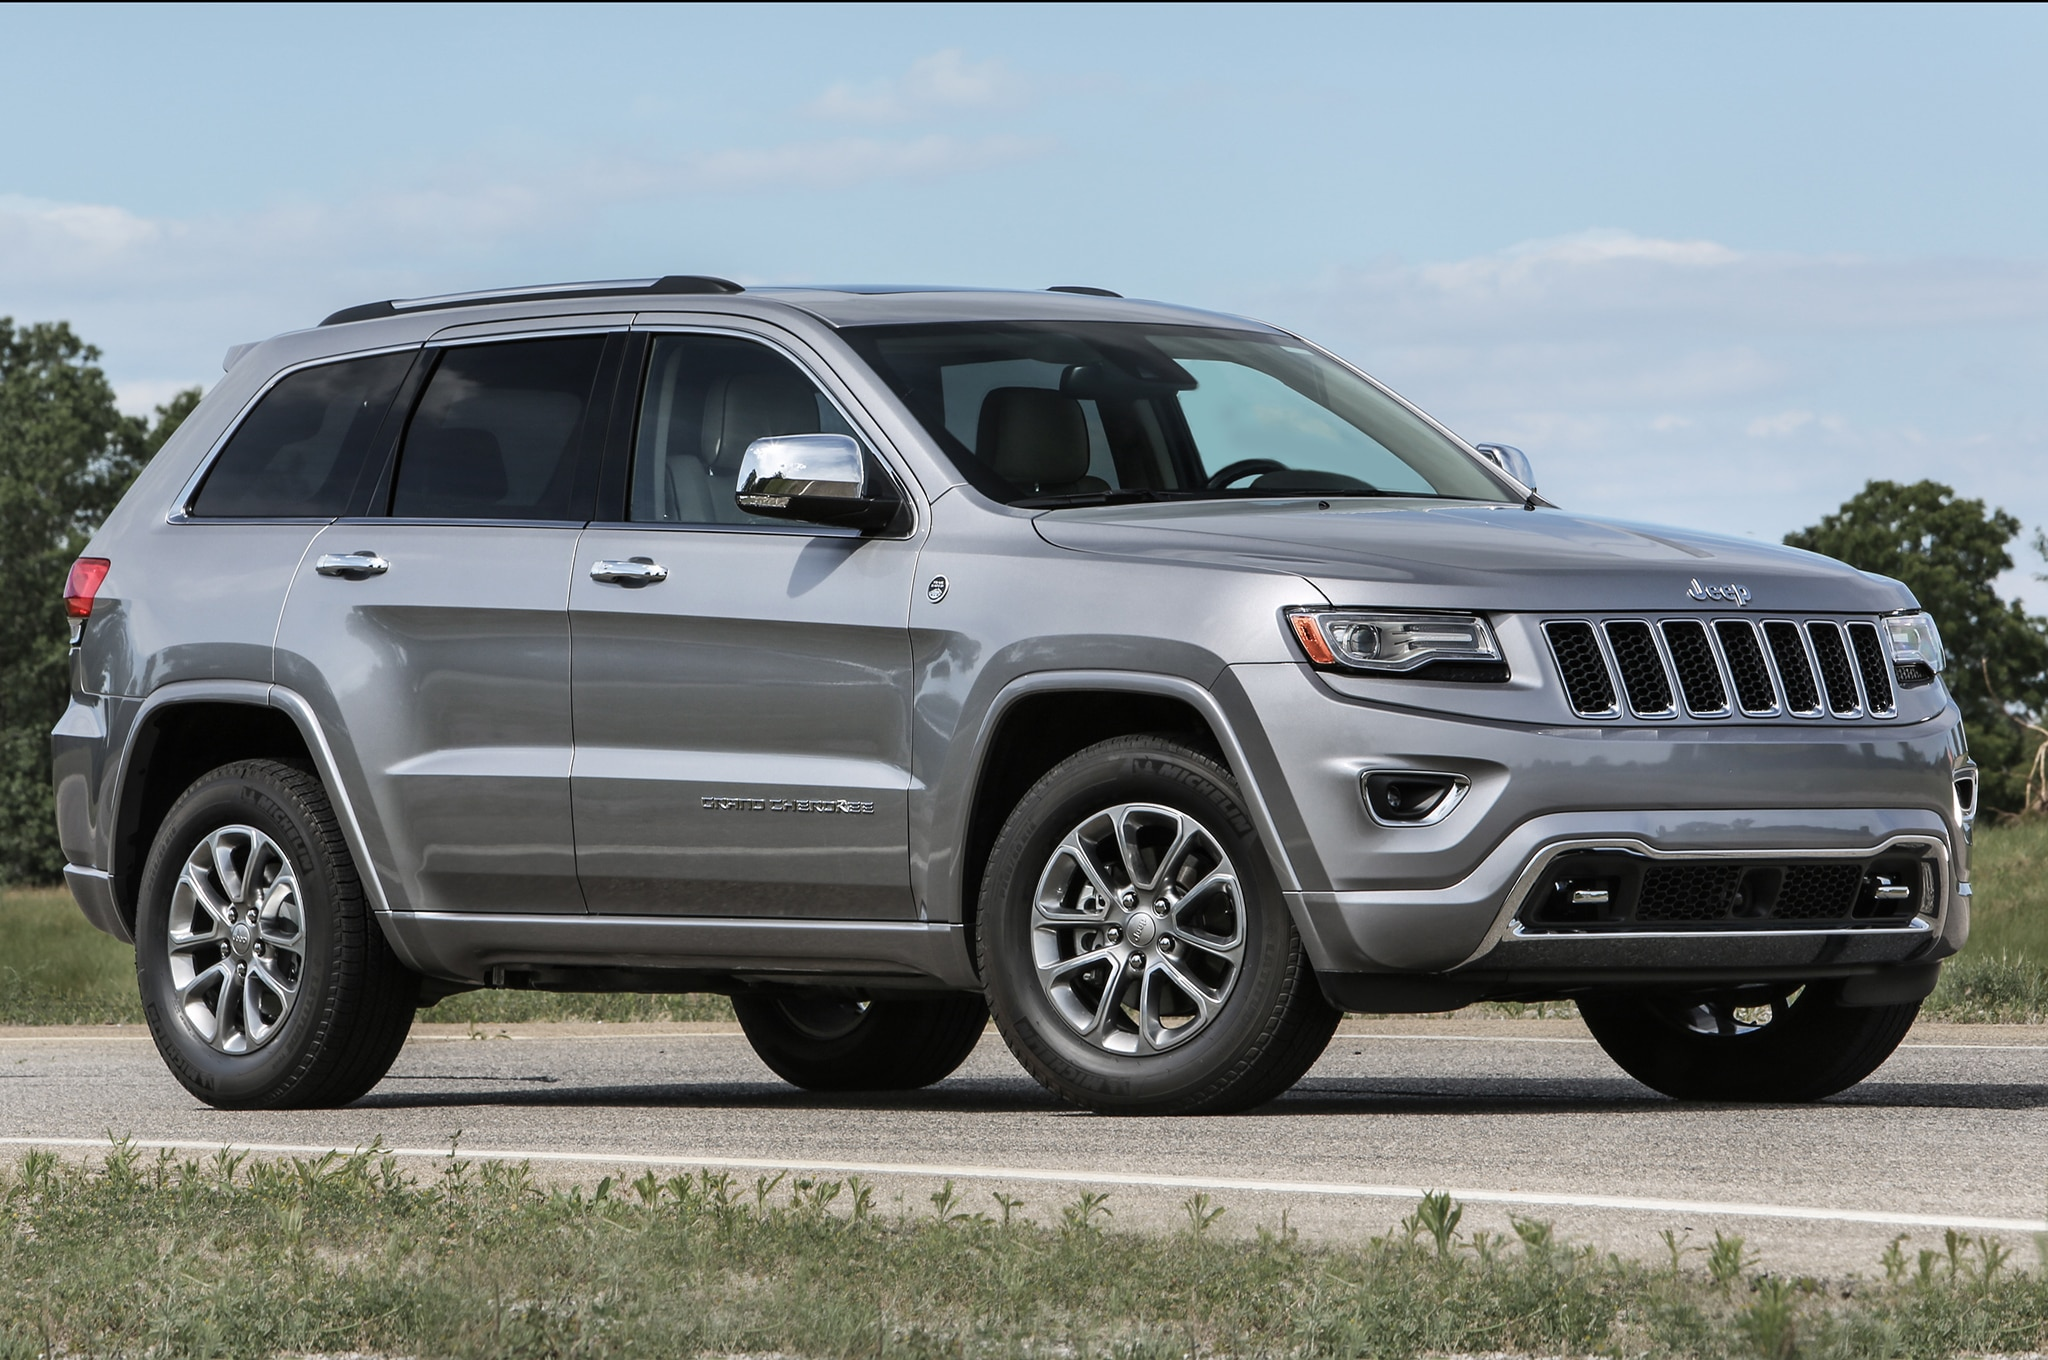 2016 jeep grand cherokee wins ideal vehicle award bemidji chrysler center blog. Black Bedroom Furniture Sets. Home Design Ideas